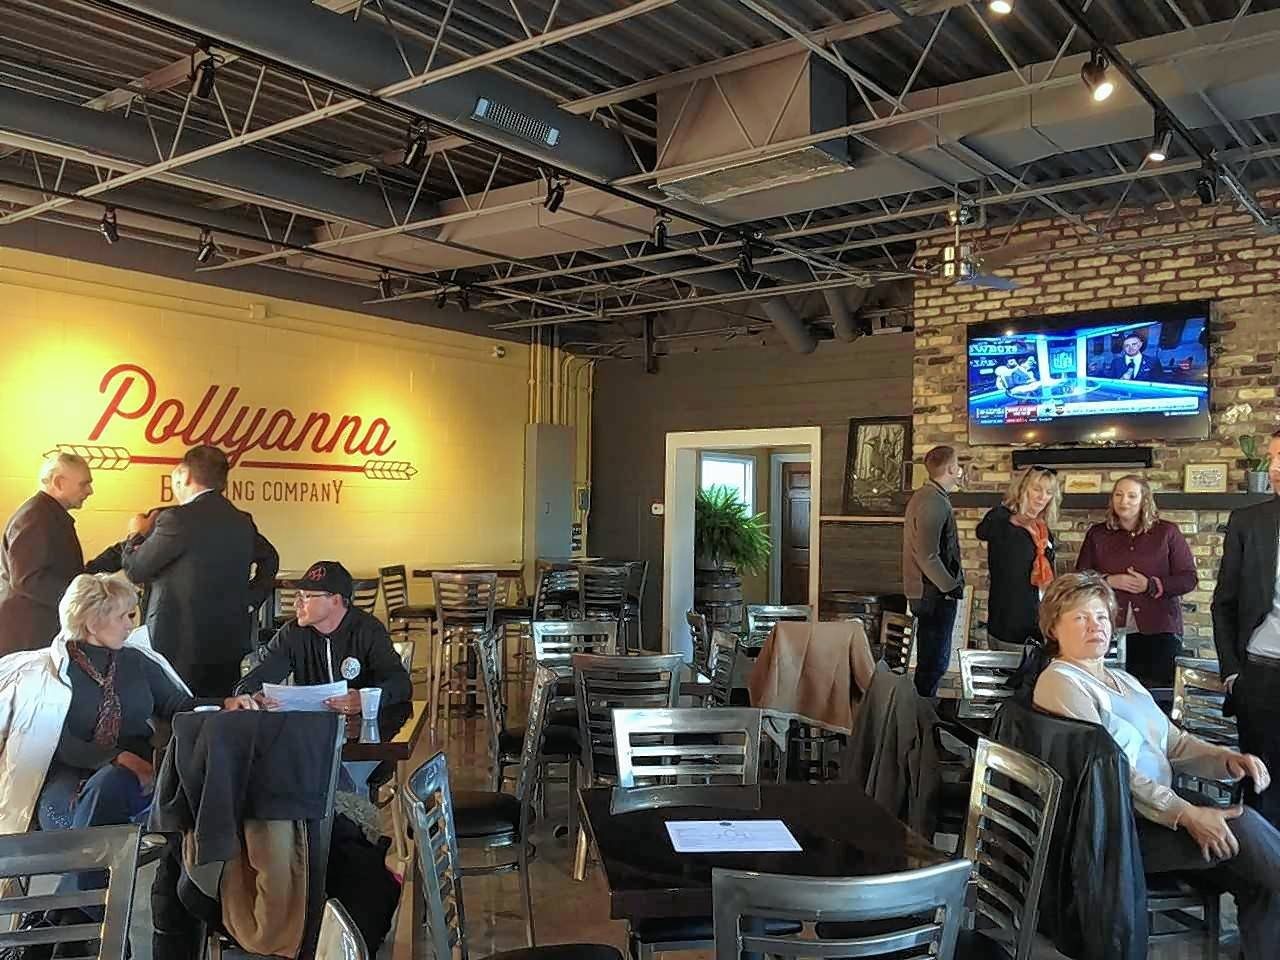 Pollyanna Brewing Co. is opening a new location in Roselle called Roselare Brewery & Tap Room.